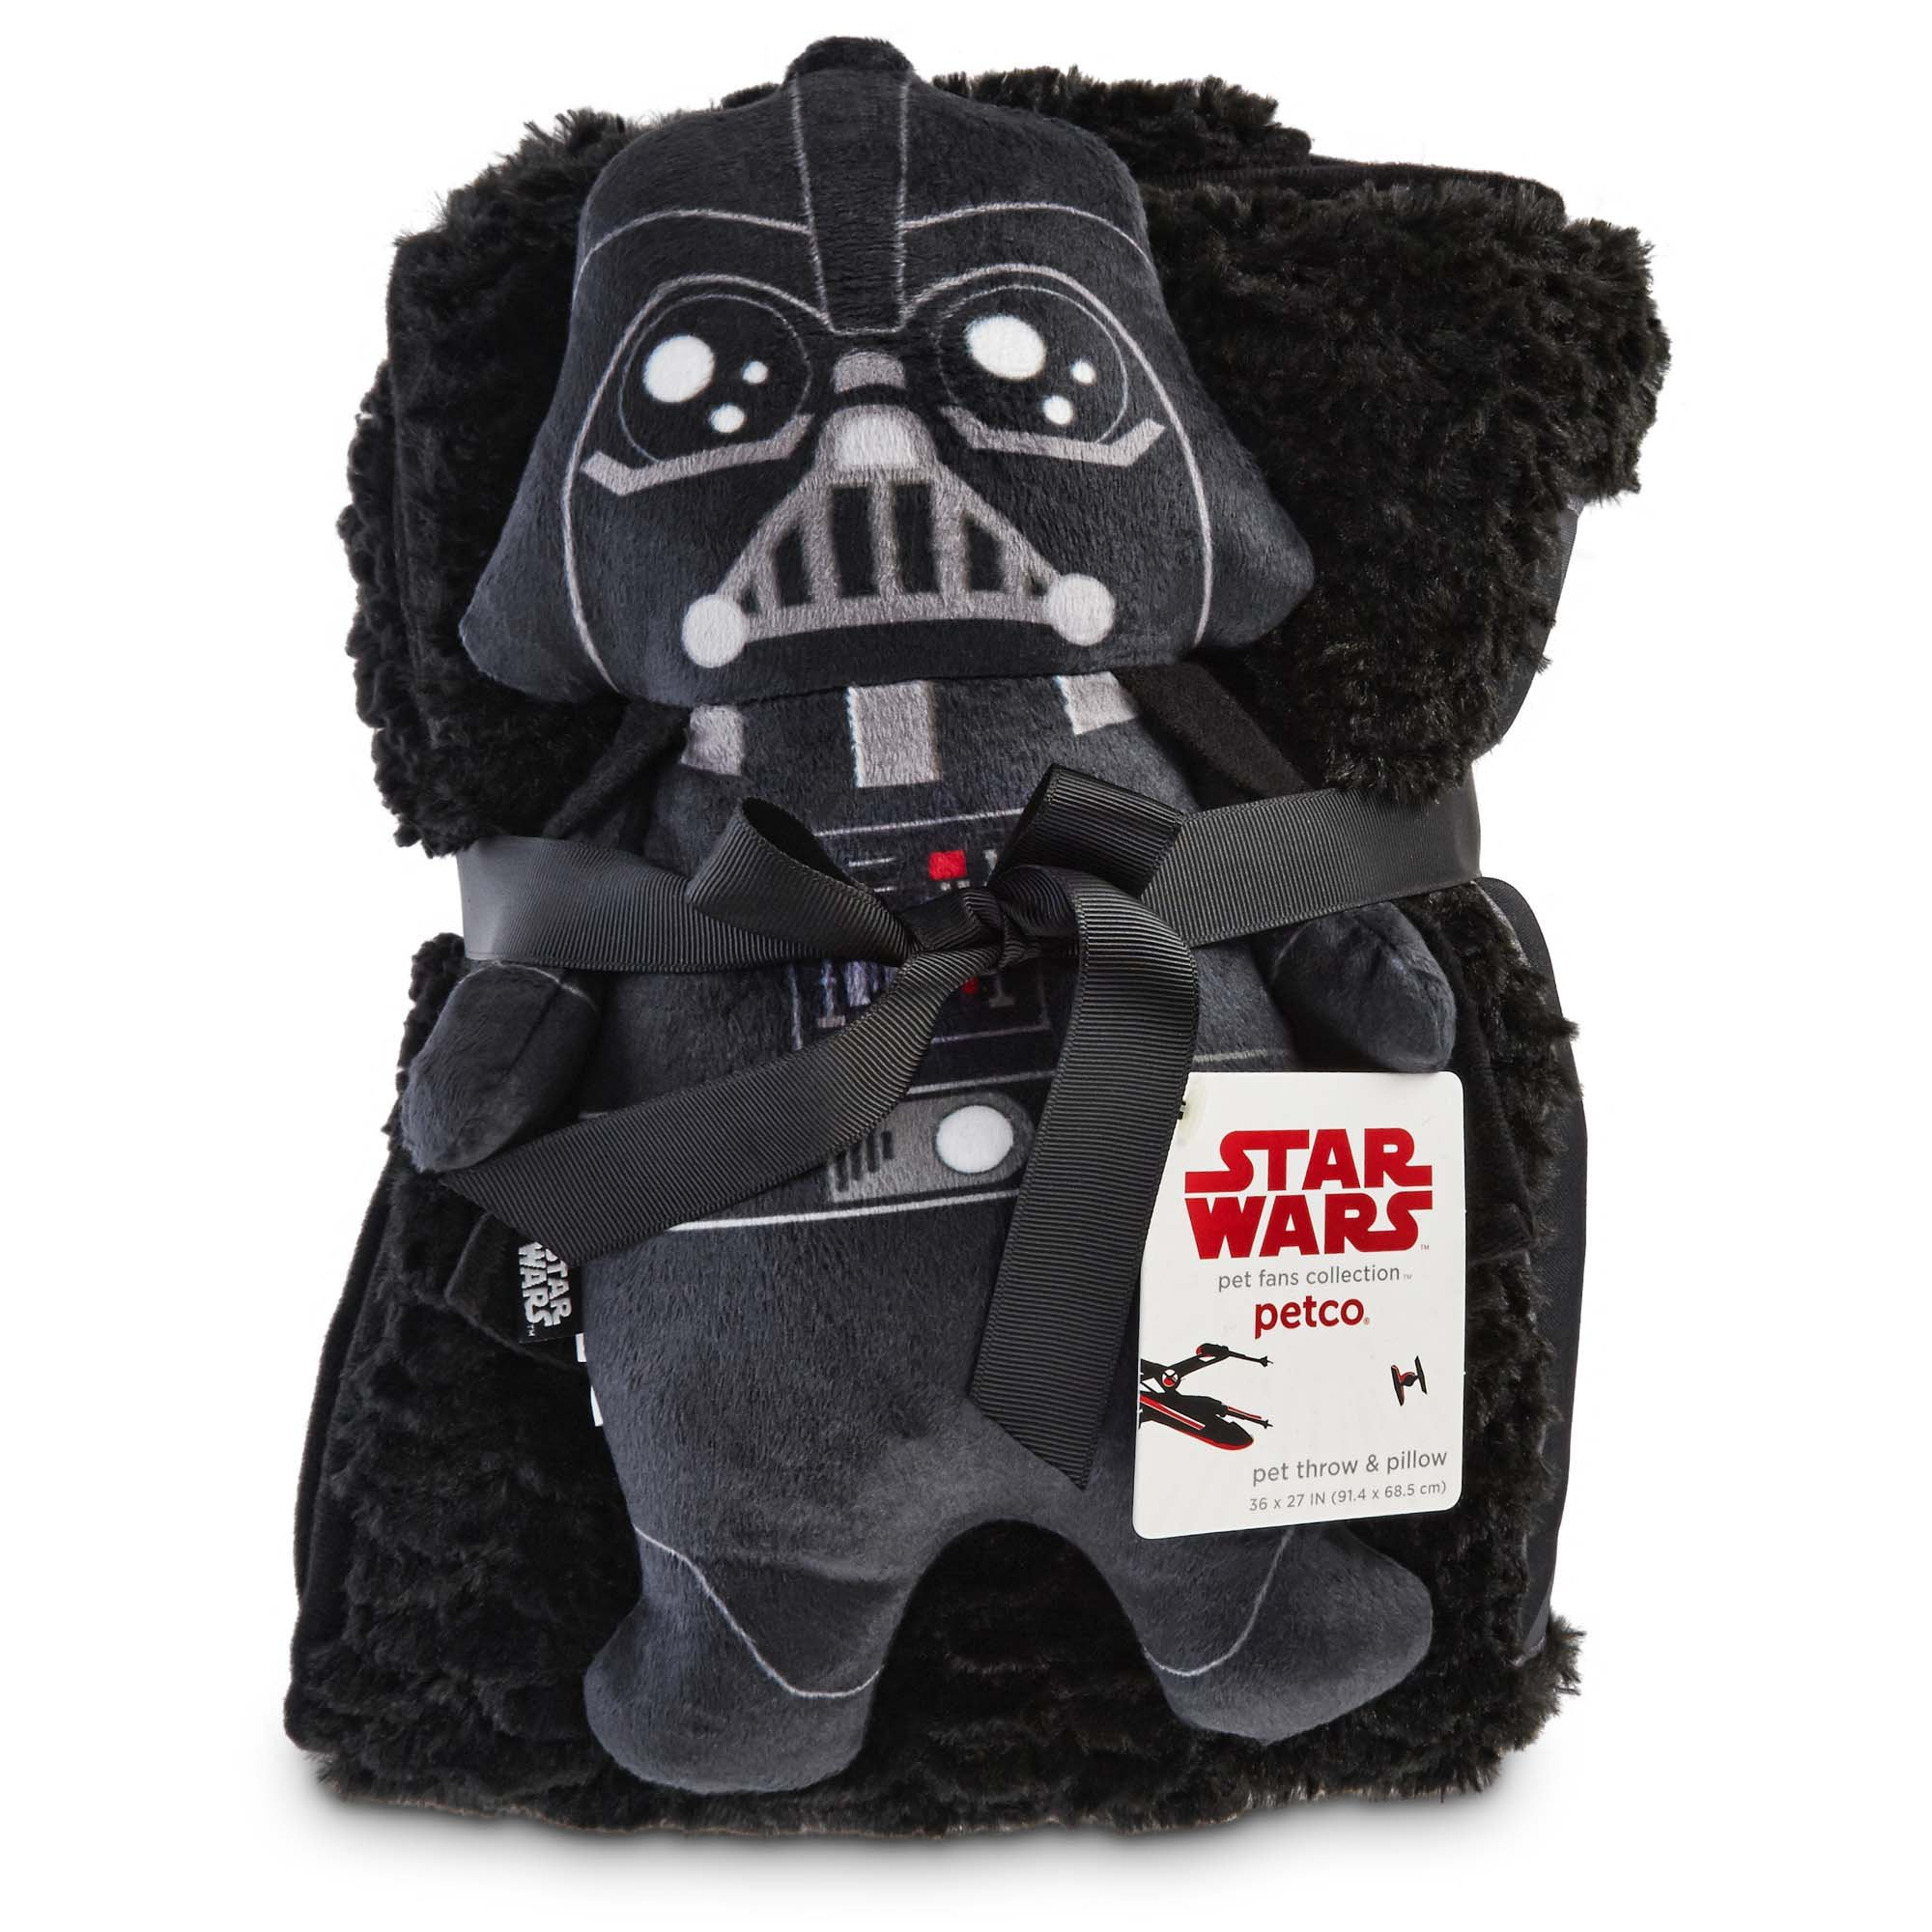 Star Wars Darth Vader Throw and Pillow for Dogs, Small